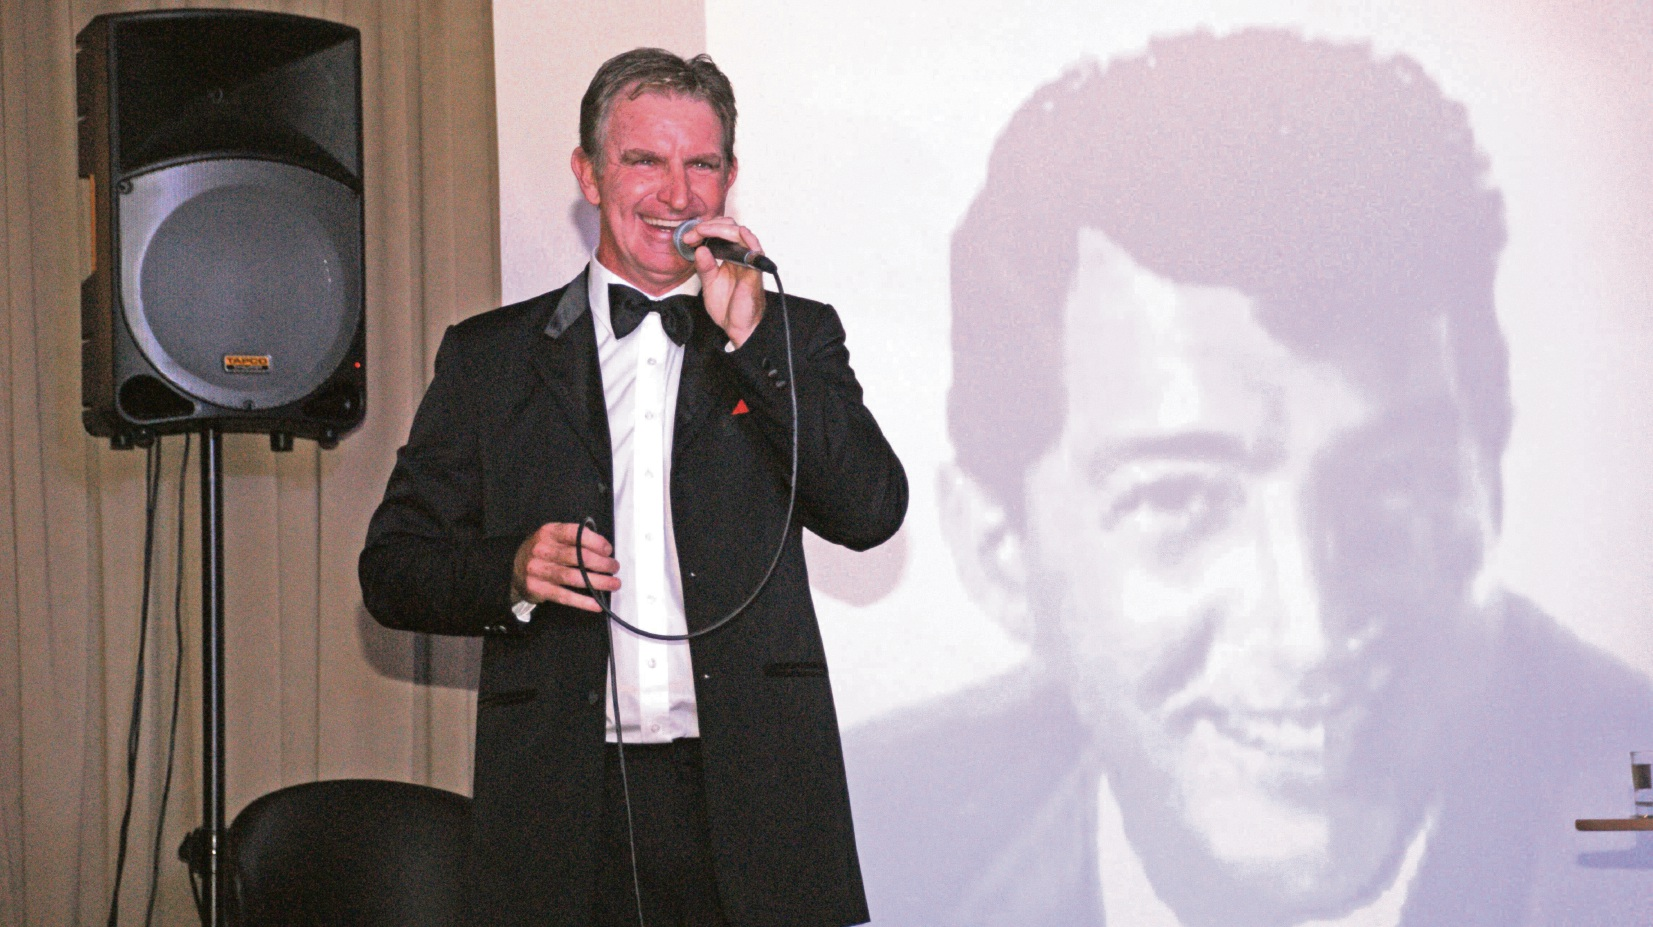 Tapping performer wants to do Dean Martin tribute show for dementia carers